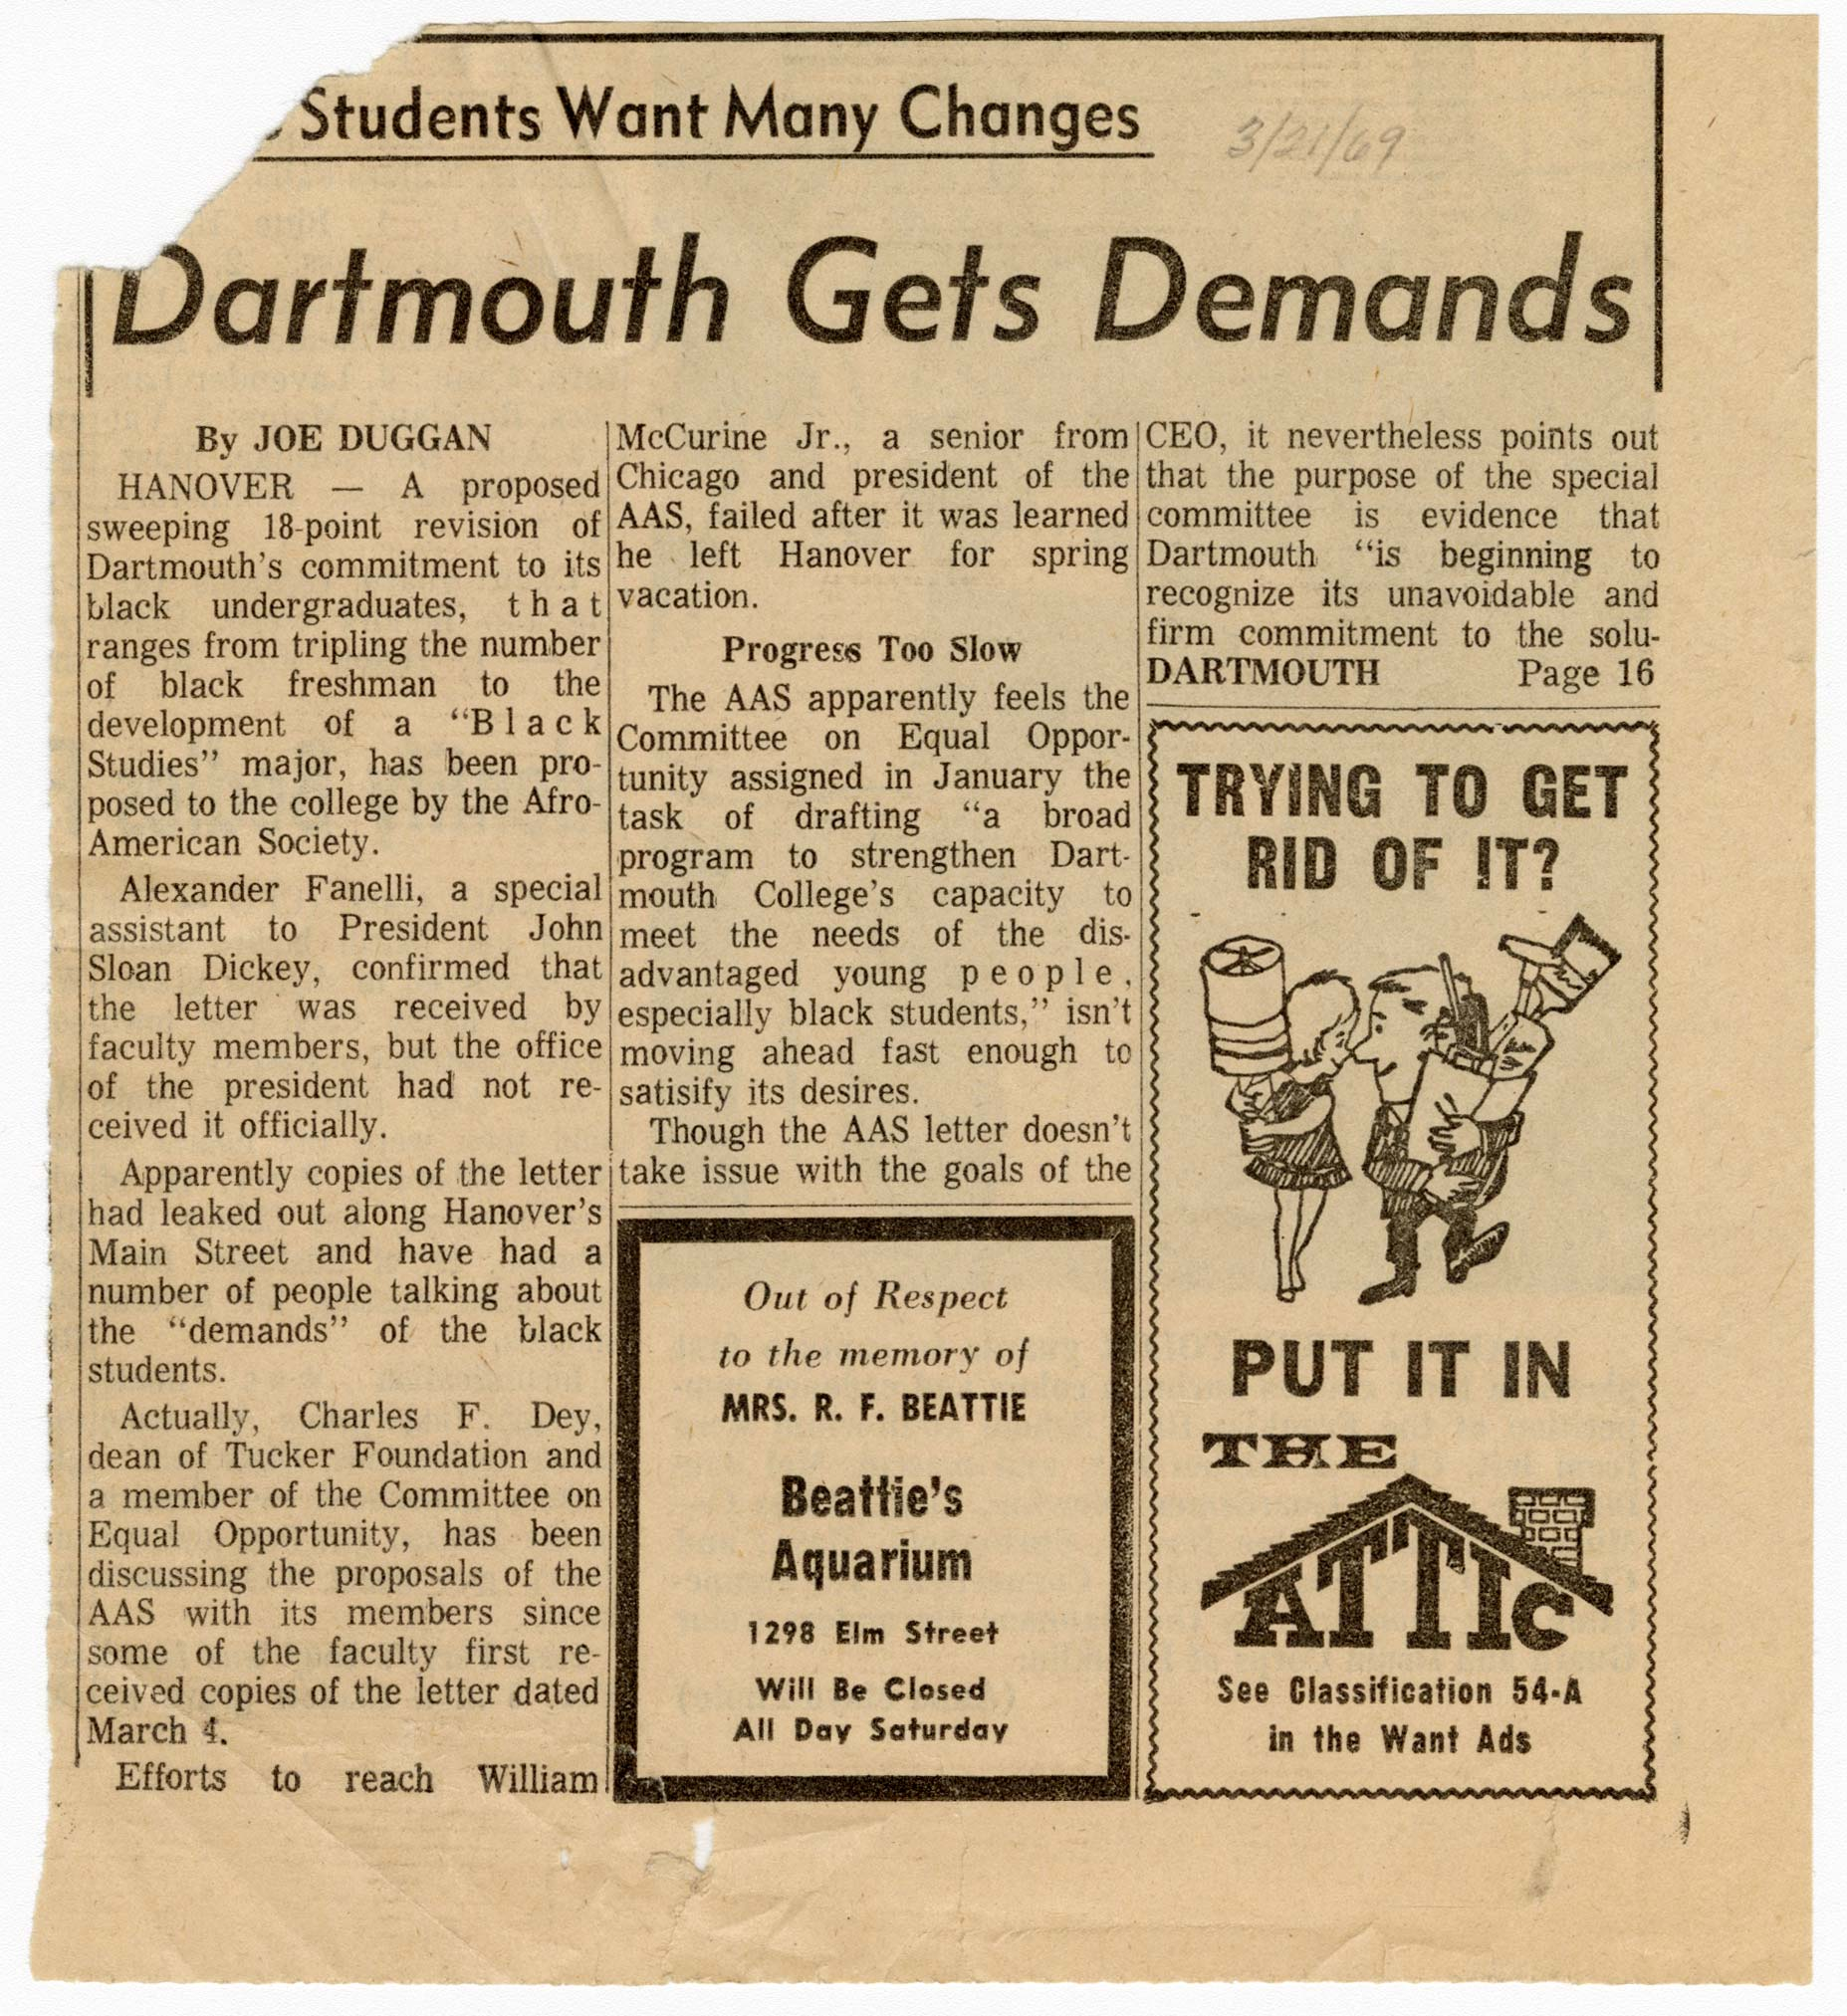 "This newspaper article was published following the presentation of demands by Dartmouth's Afro-American Society (AAS) to the College administration. As author Joe Duggan reports, the 18-point resolution was submitted to College officials primarily to address Dartmouth's recruitment and admissions policies, including demands for a firm commitment to increasing the percentage of Black students in incoming freshmen classes and Black representation in admissions and guidance departments. In addition to recruitment and advising, the article articulates the students' other goals, such as a new building to house the Dartmouth Afro-American Society and ""the development and implementation of a black studies major by September of 1970."""